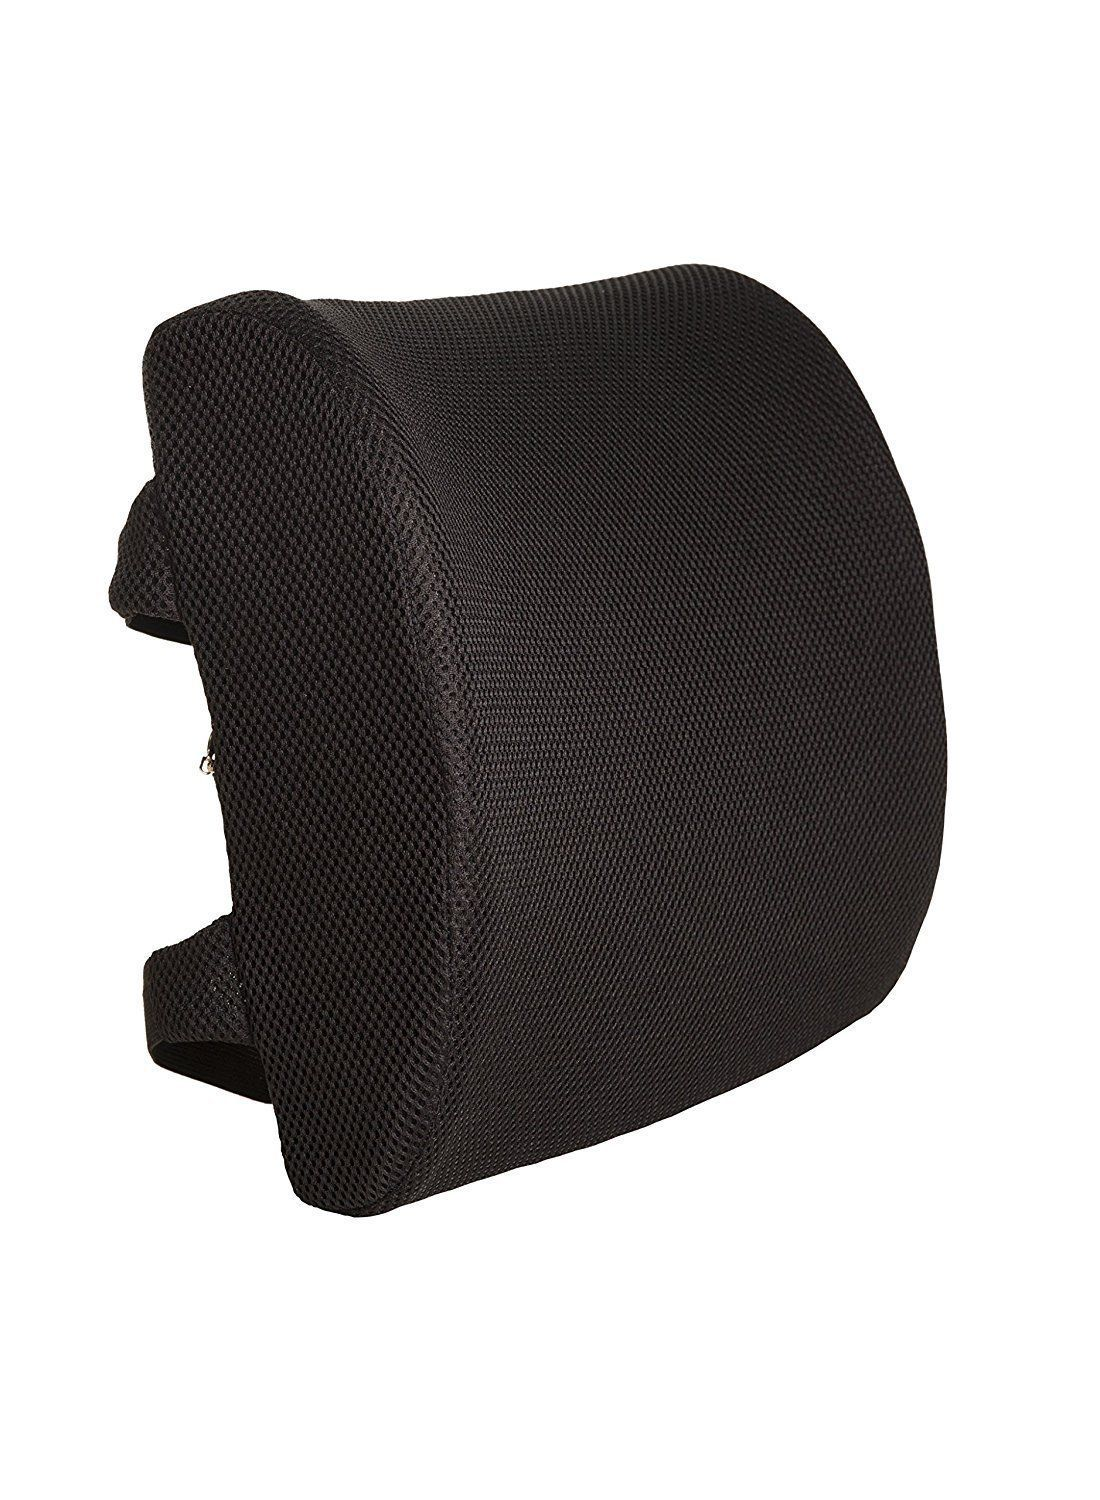 10 Best Lumbar Support Cushions That All Desk Workers Need